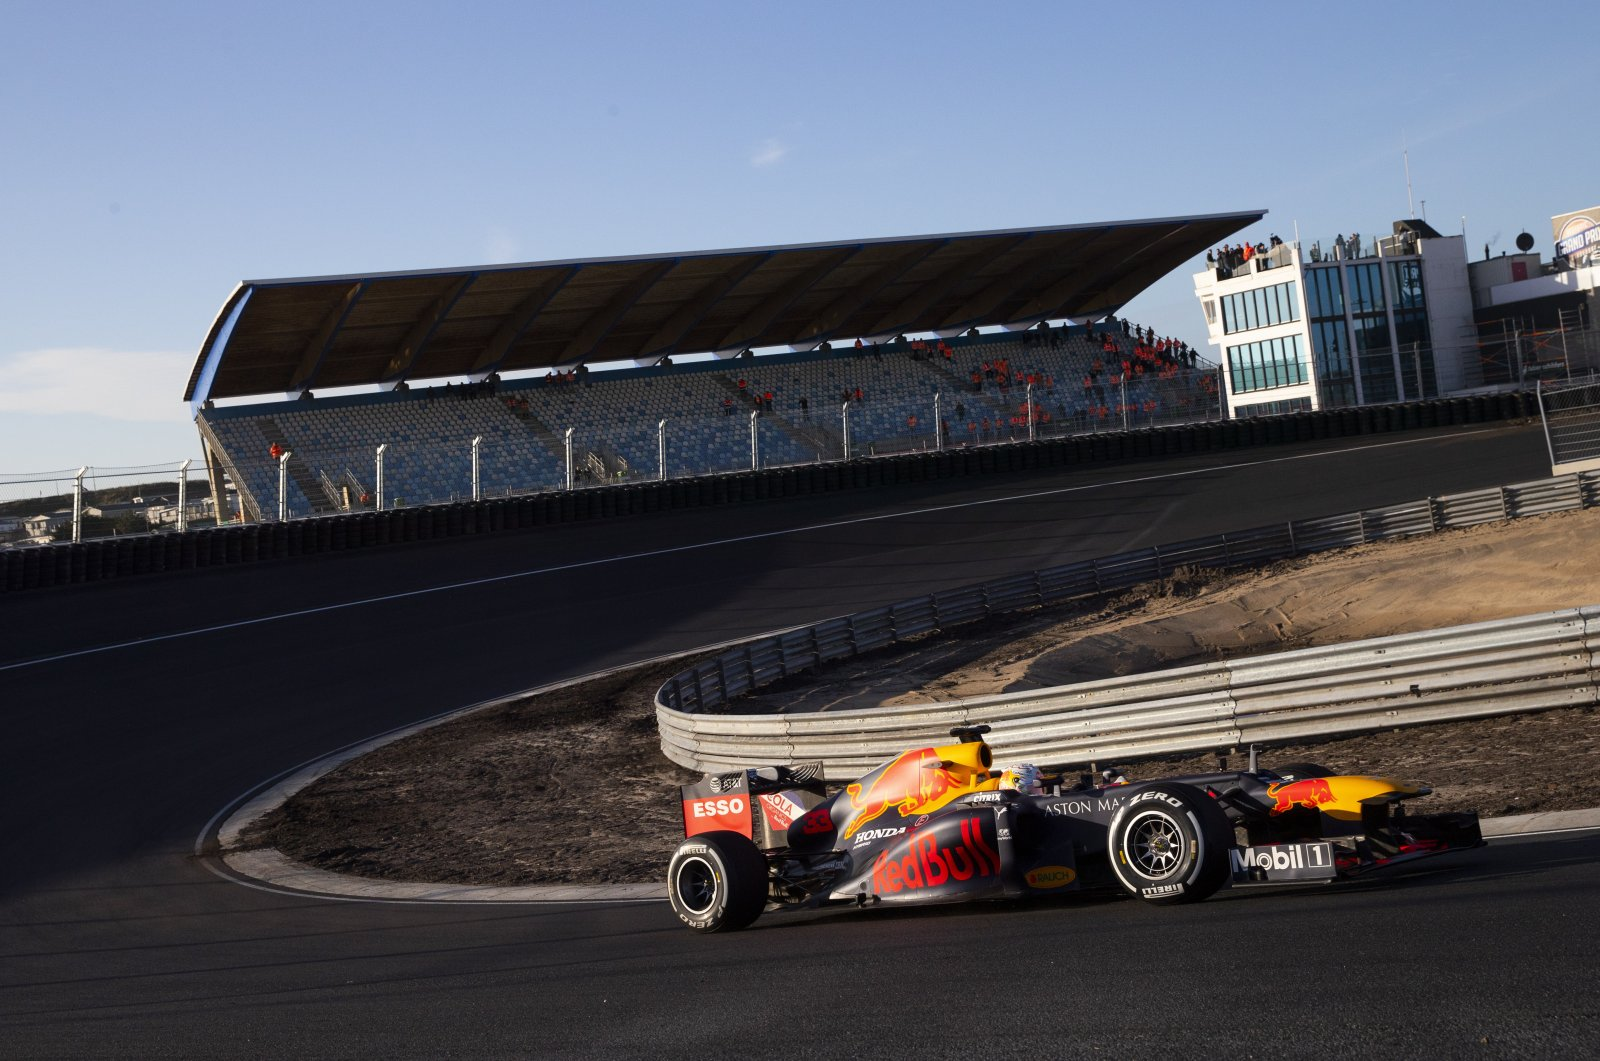 F1 driver Max Verstappen drives his car through one of the two banked corners during a test and official presentation of the renovated F1 track in Zandvoort, Netherlands, March 4, 2020. (AP Photo)